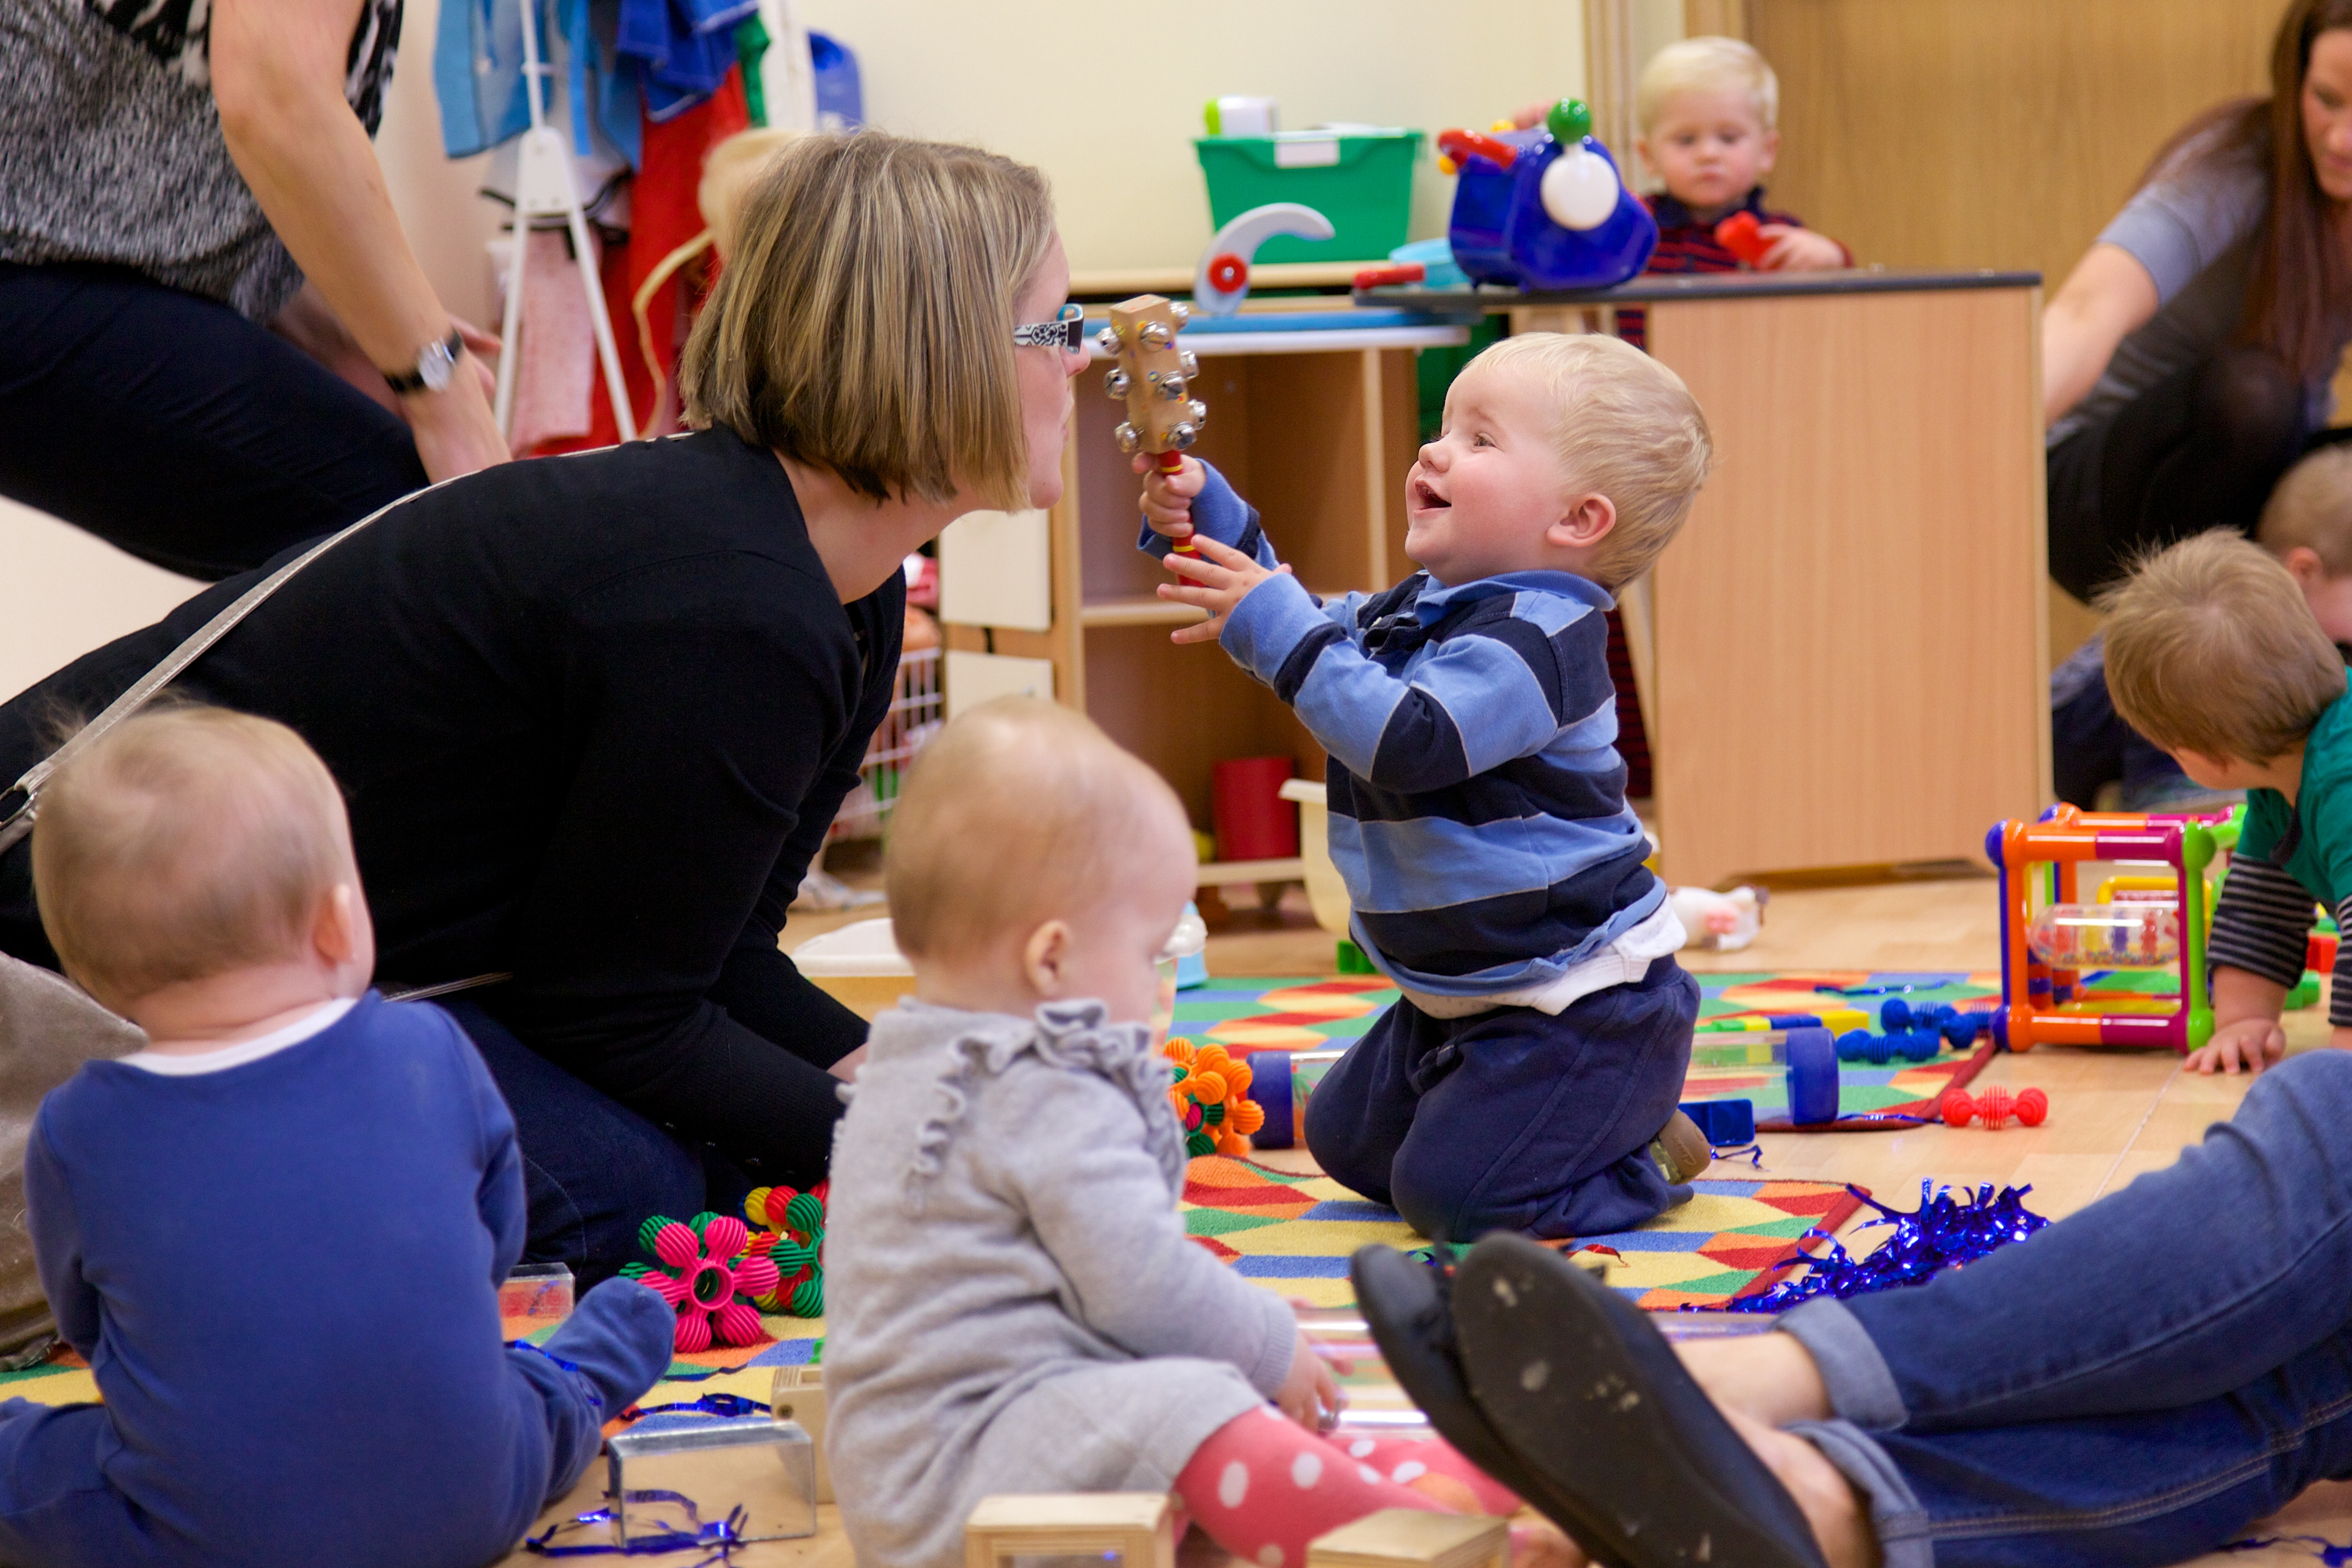 adult engaging with baby playing a music shaker